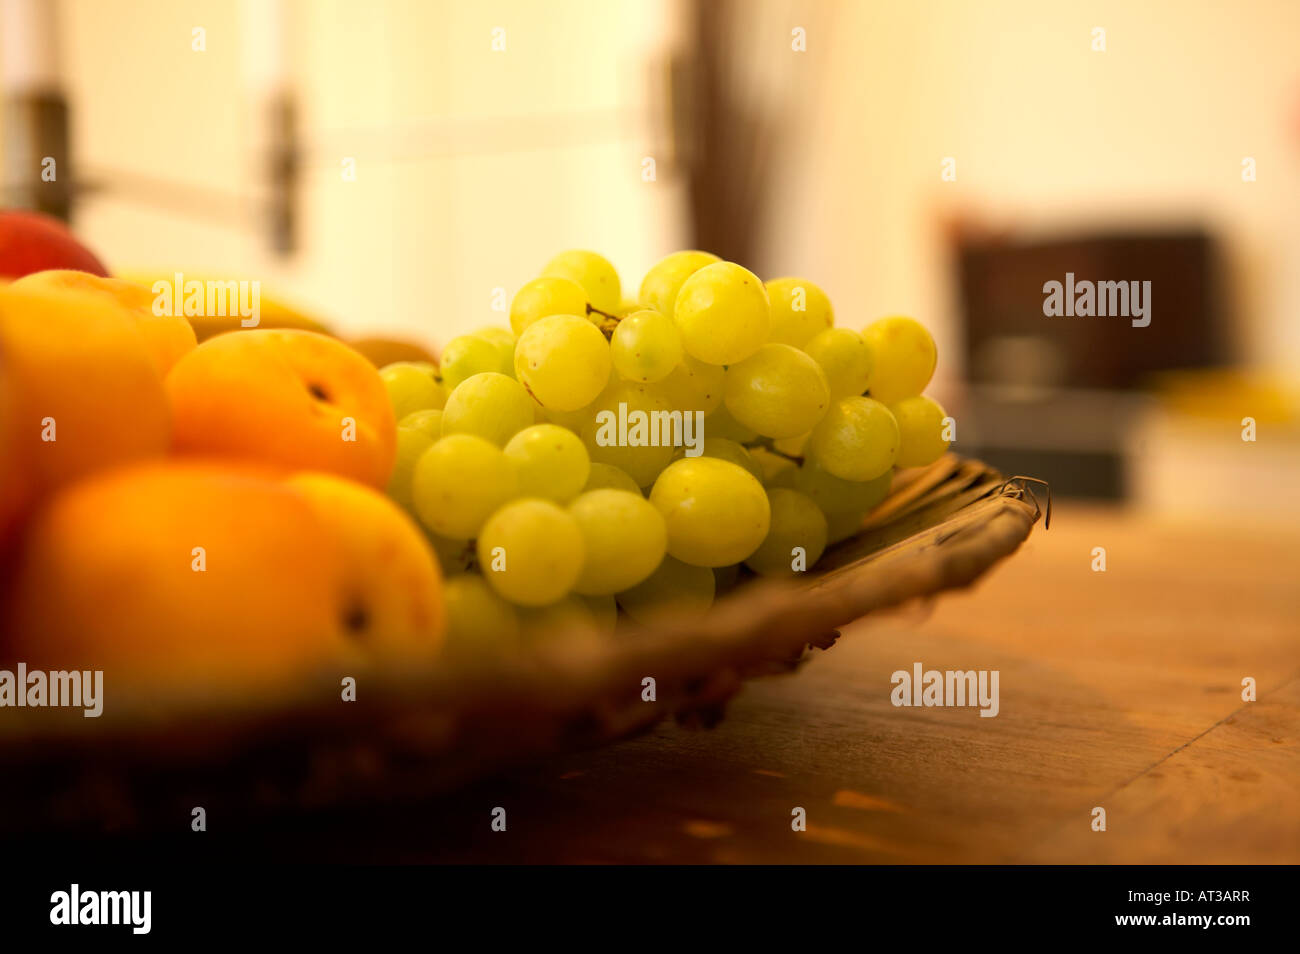 A basket of fruit on a table - Stock Image